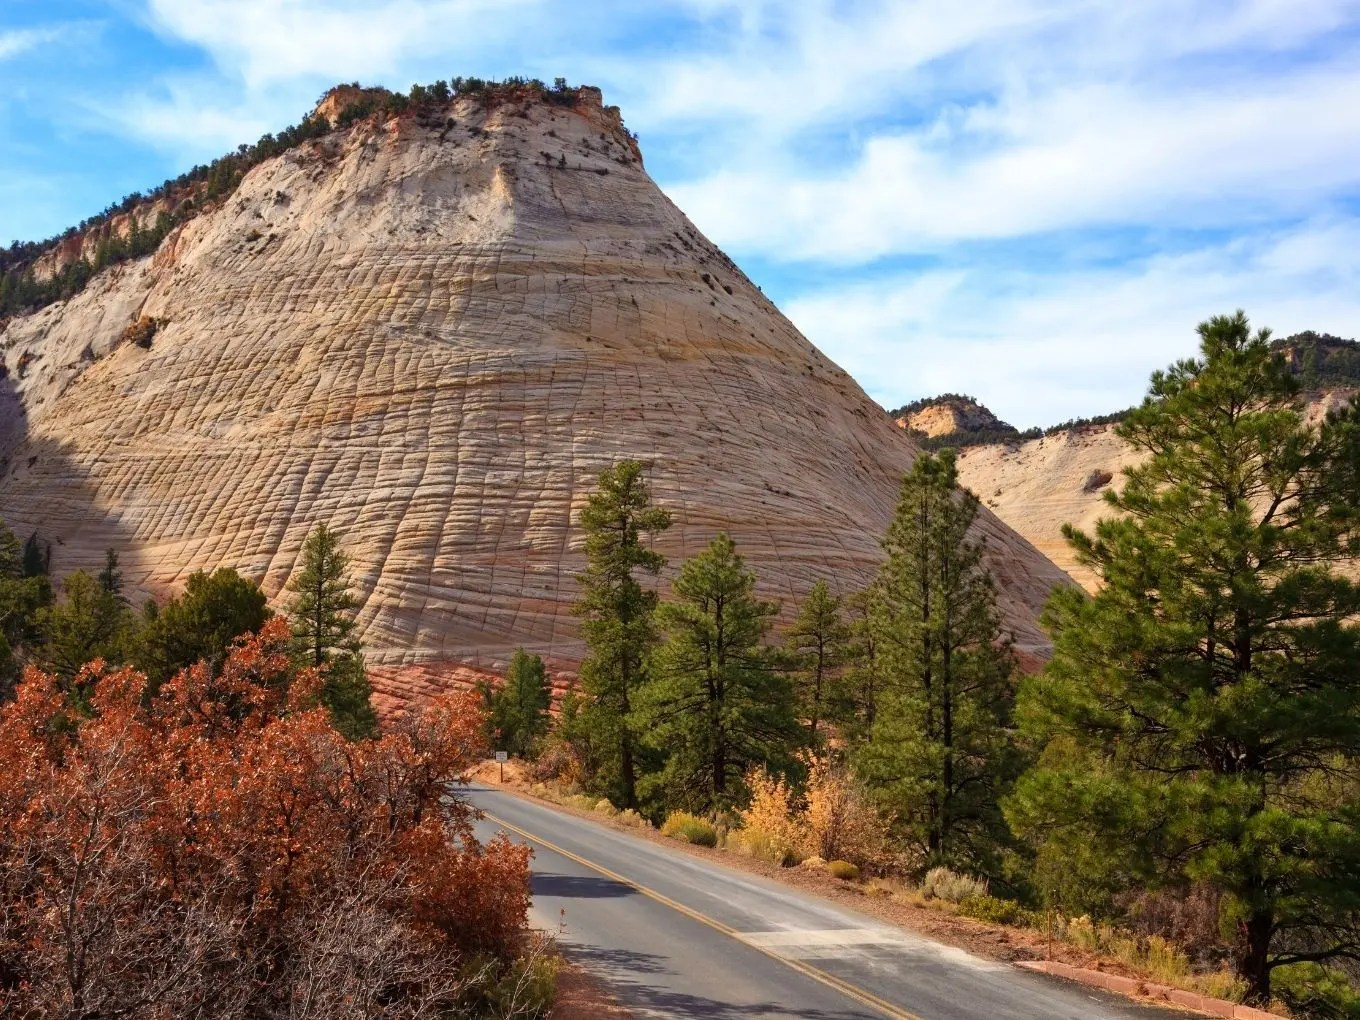 Zion National Park Scenic Drives